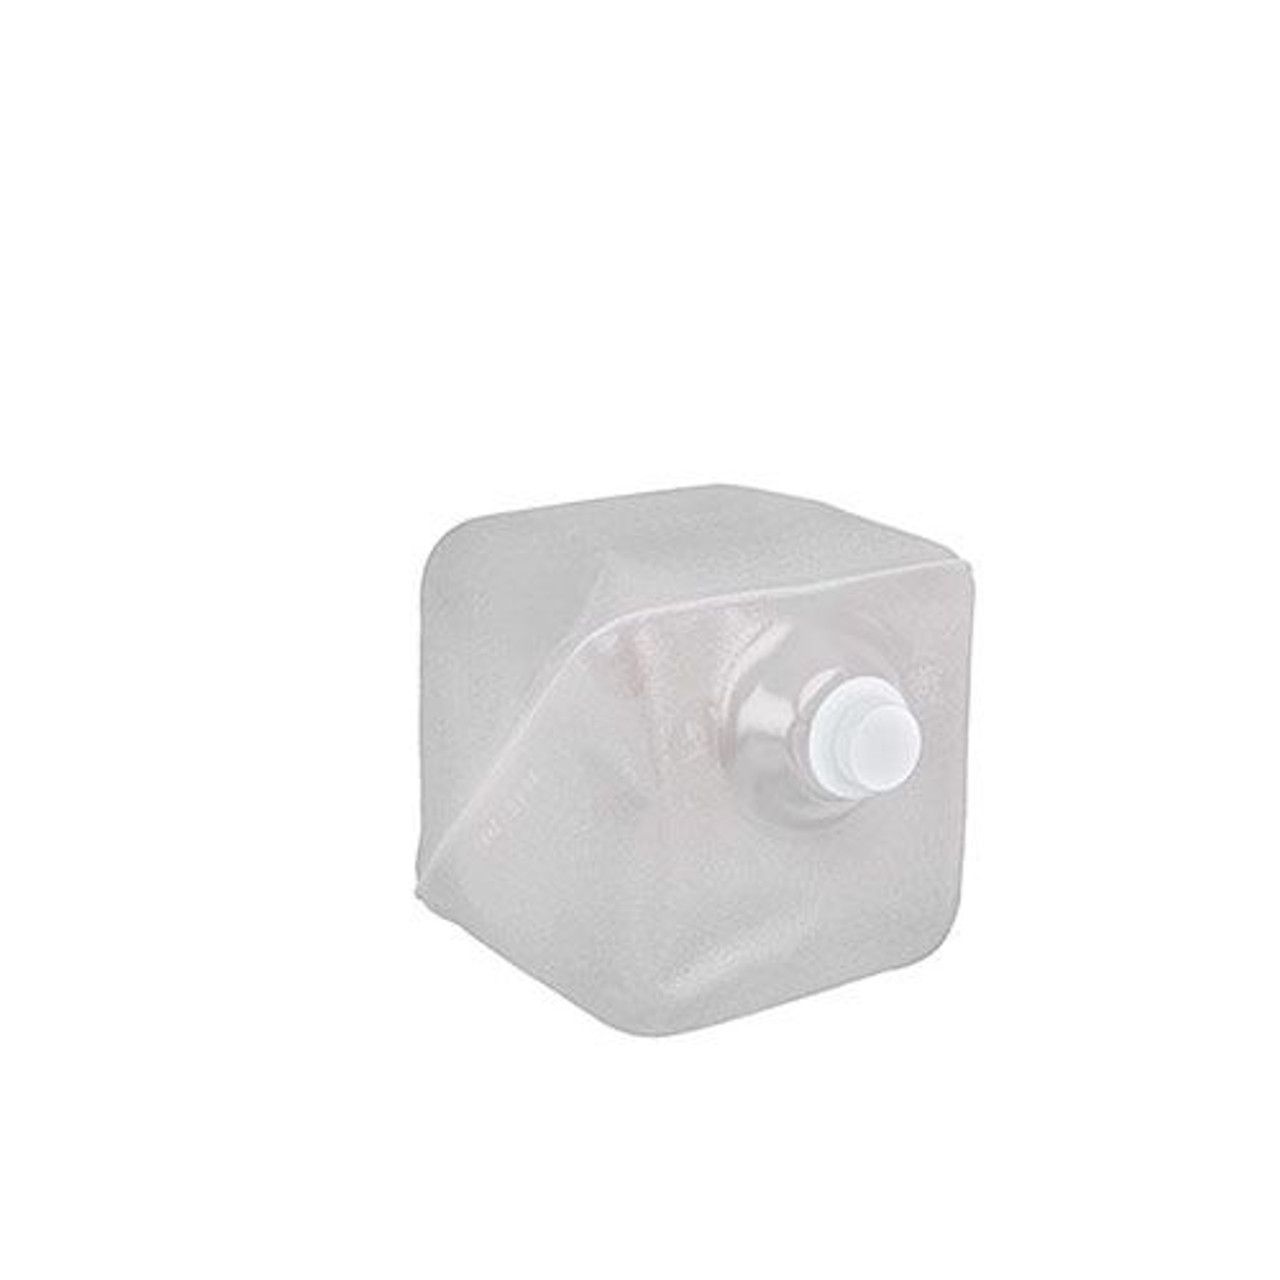 1 GALLON CUBITAINER ® COMBINATION PACKAGING